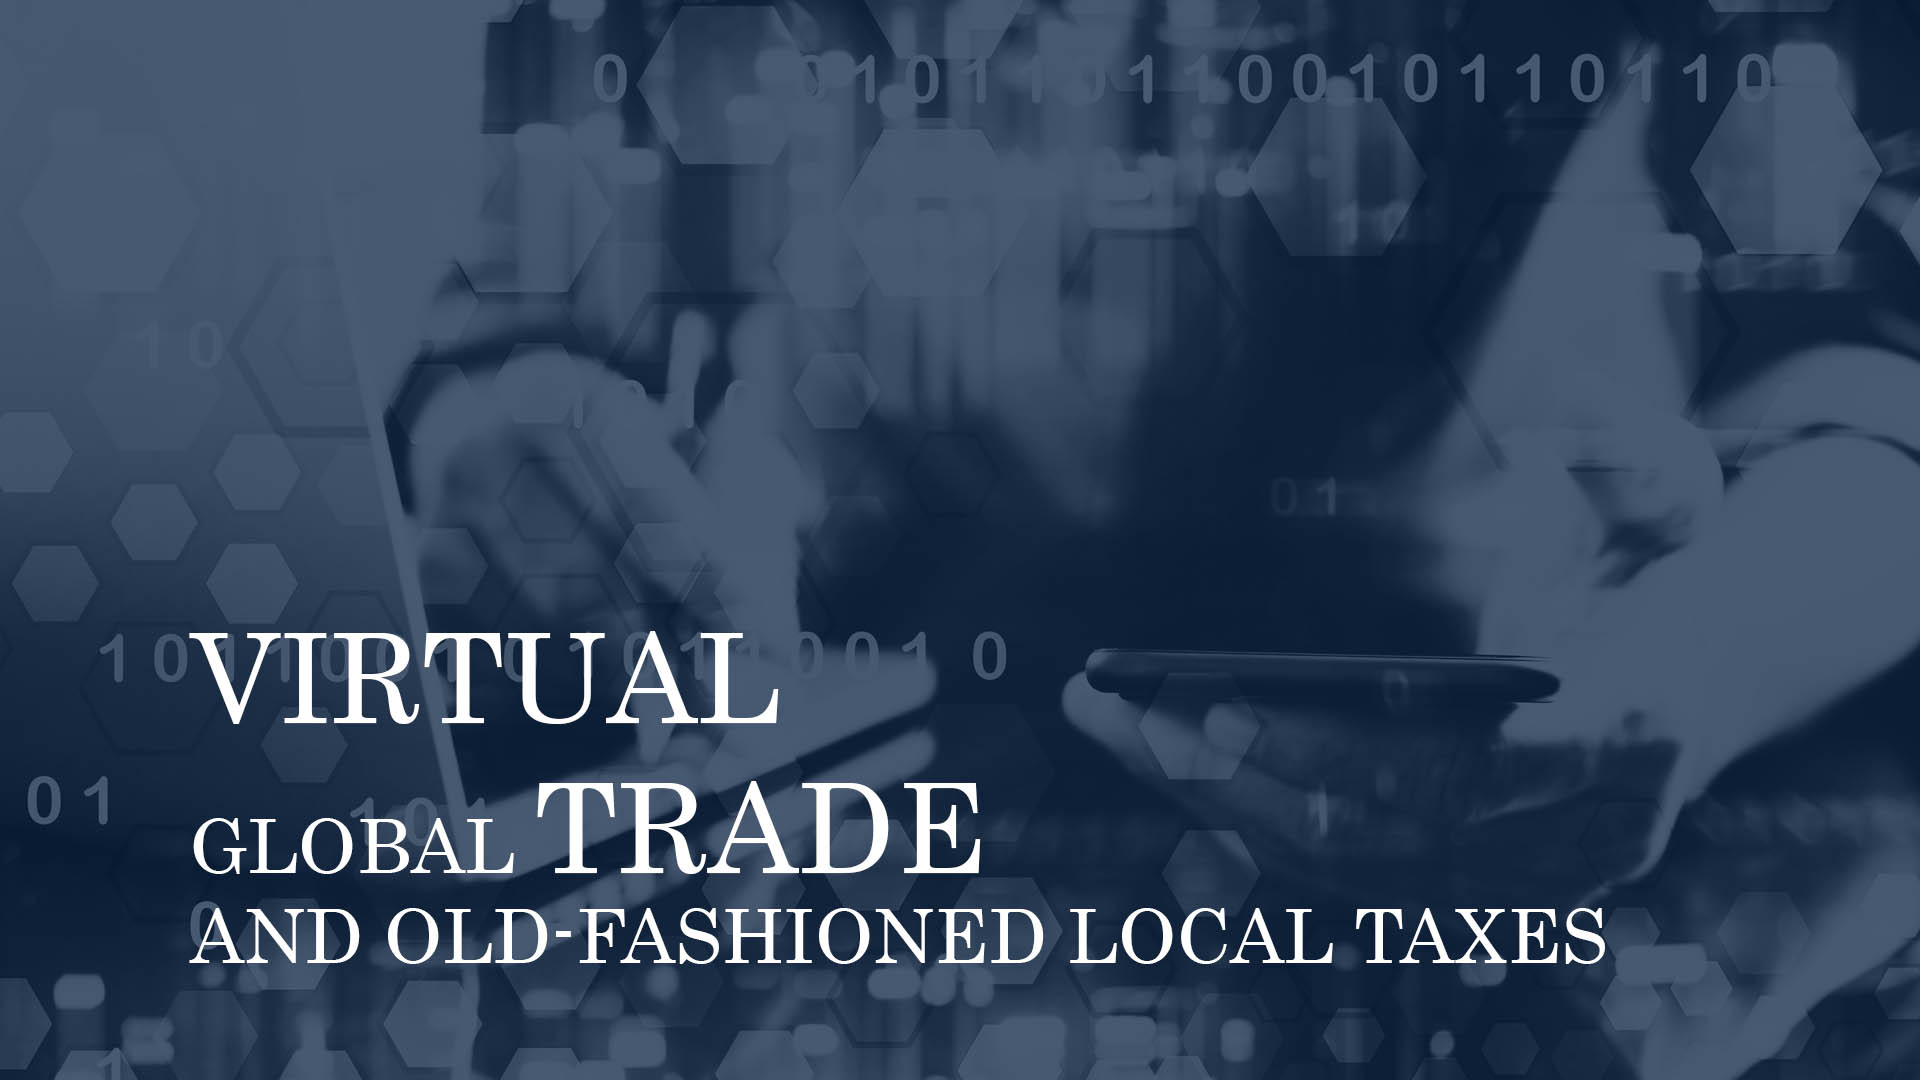 VIRTUAL GLOBAL TRADE AND OLD-FASHIONED LOCAL TAXES